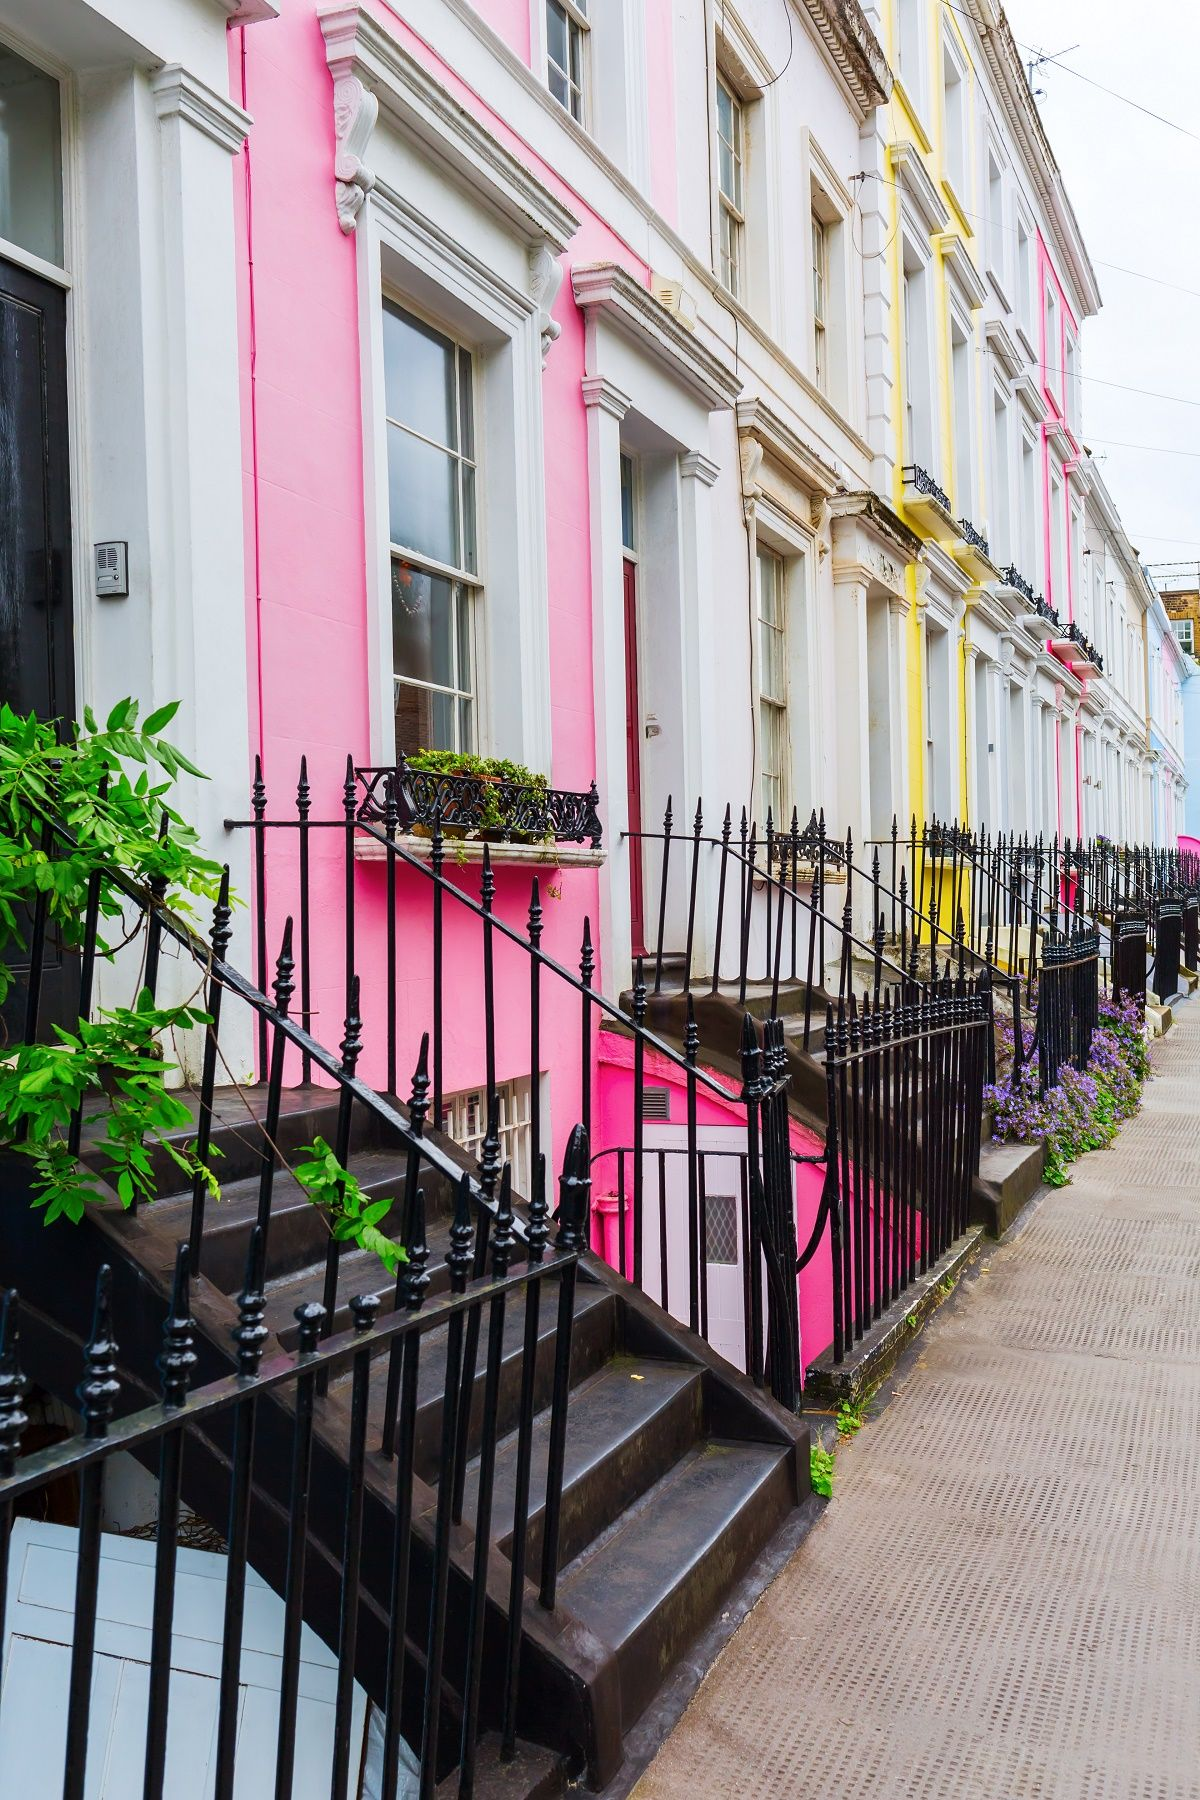 Notting Hill Ladbroke Grove notting hill | london attractions, london, london activities